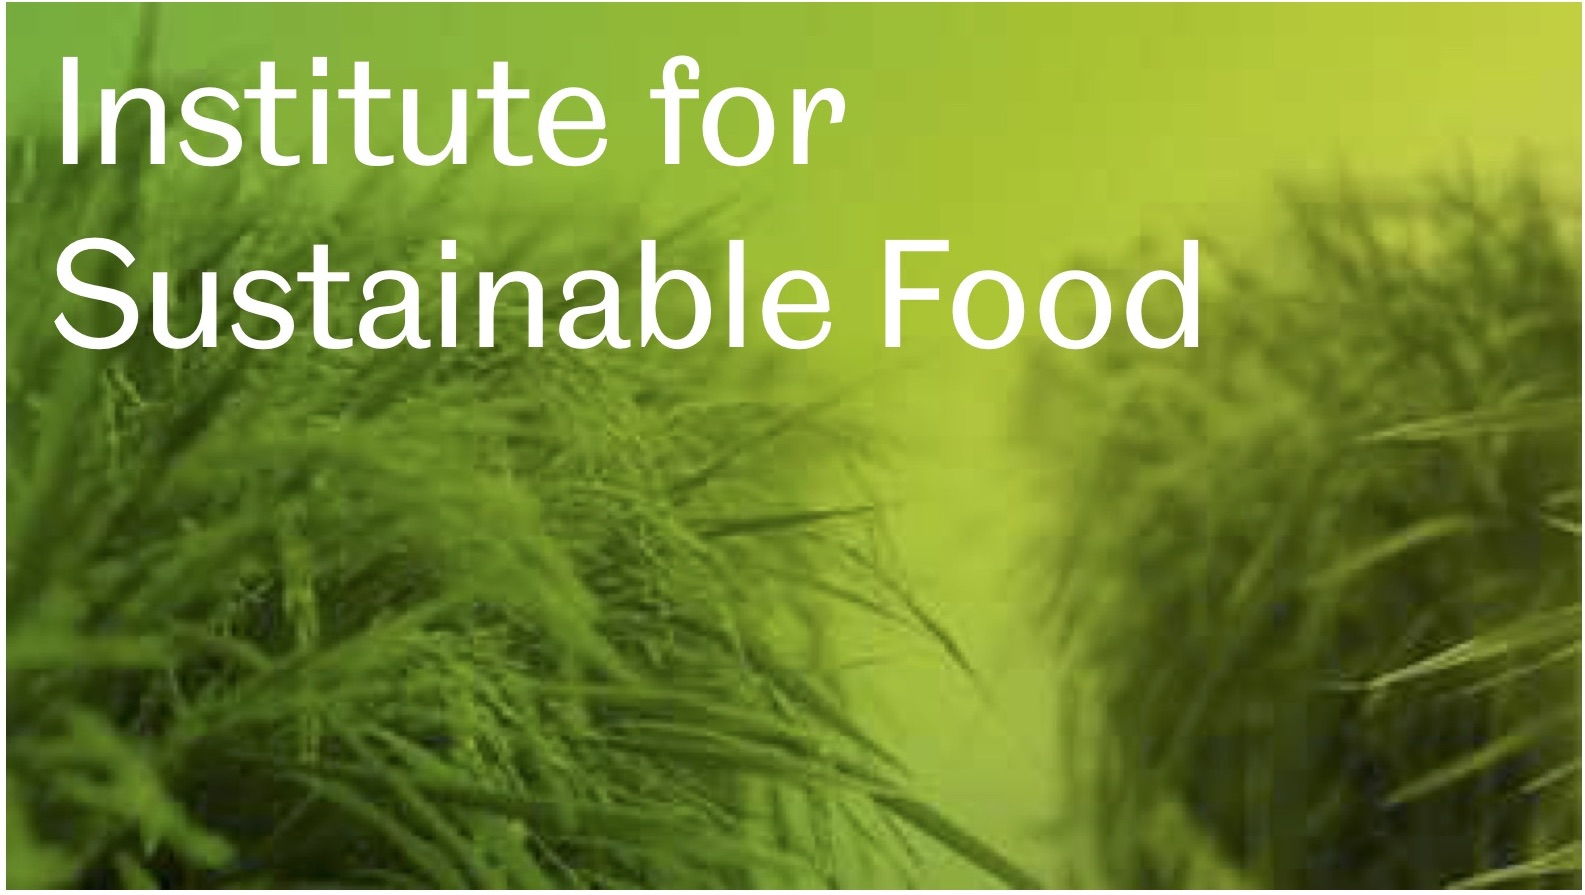 Institute for Sustainable Food